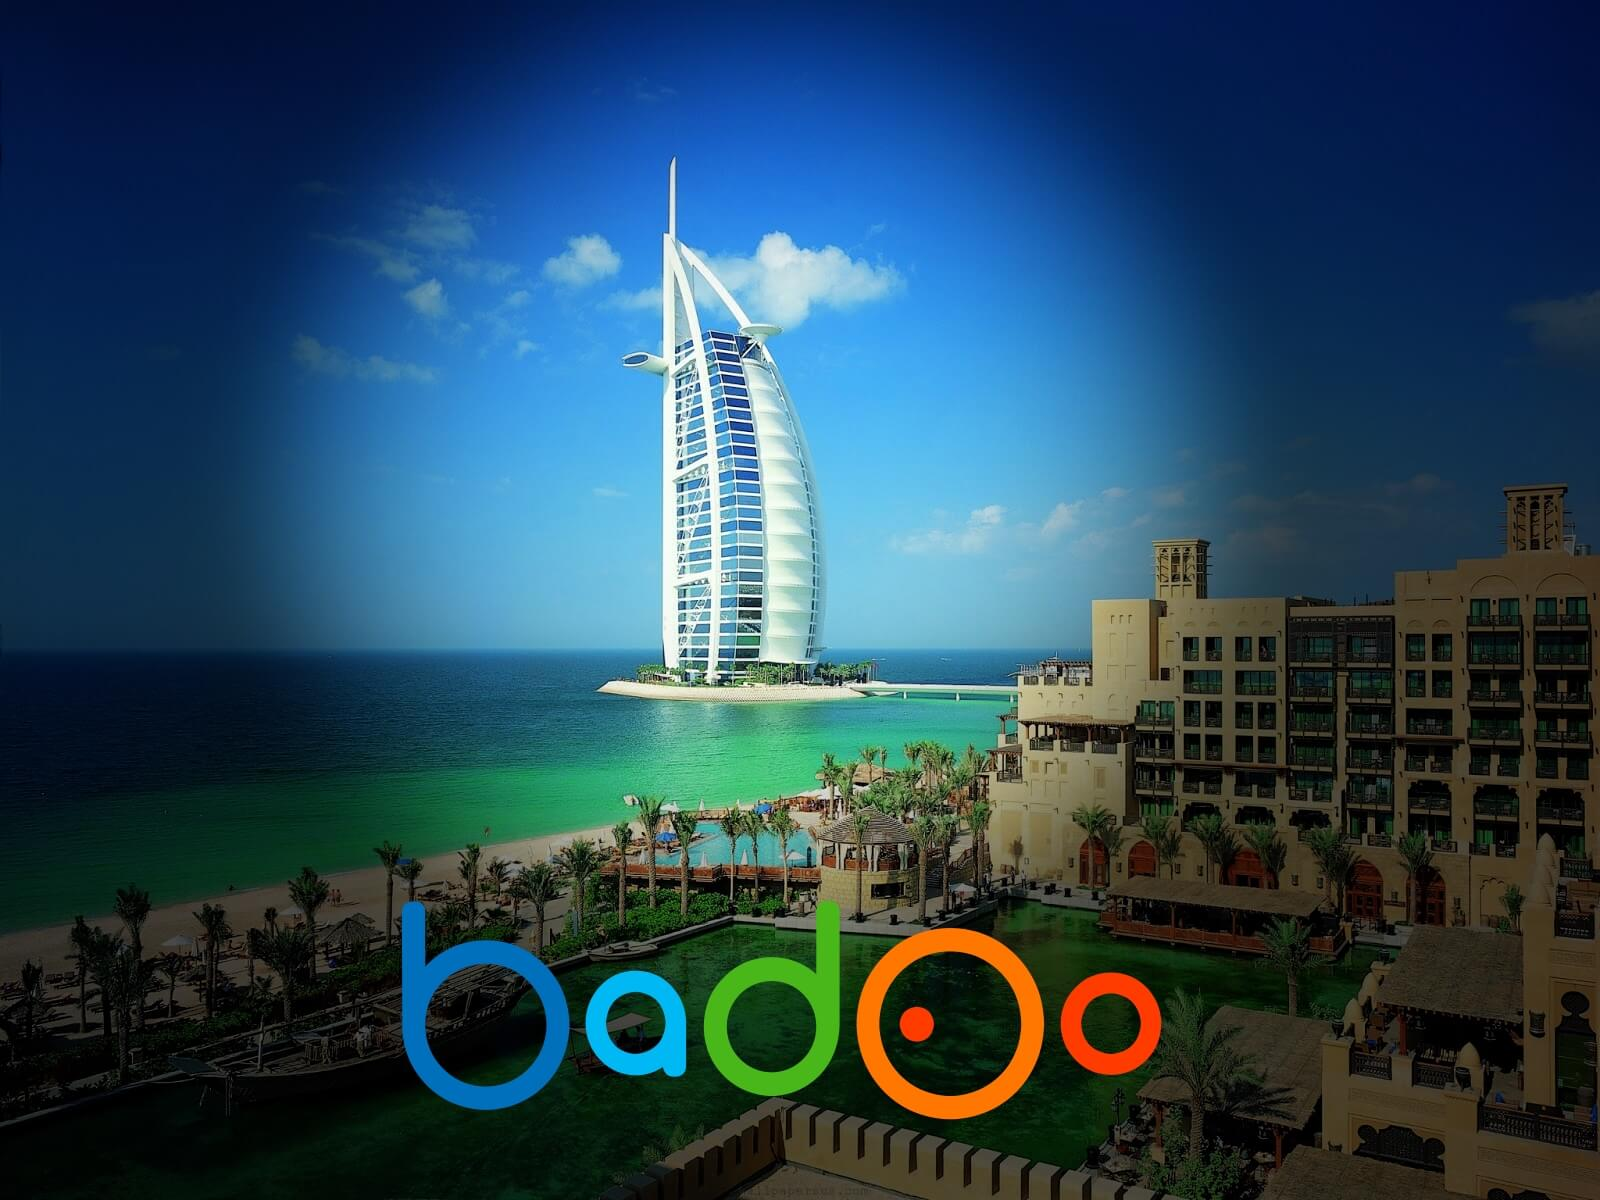 Private 2018 badoo pictures bypass How To